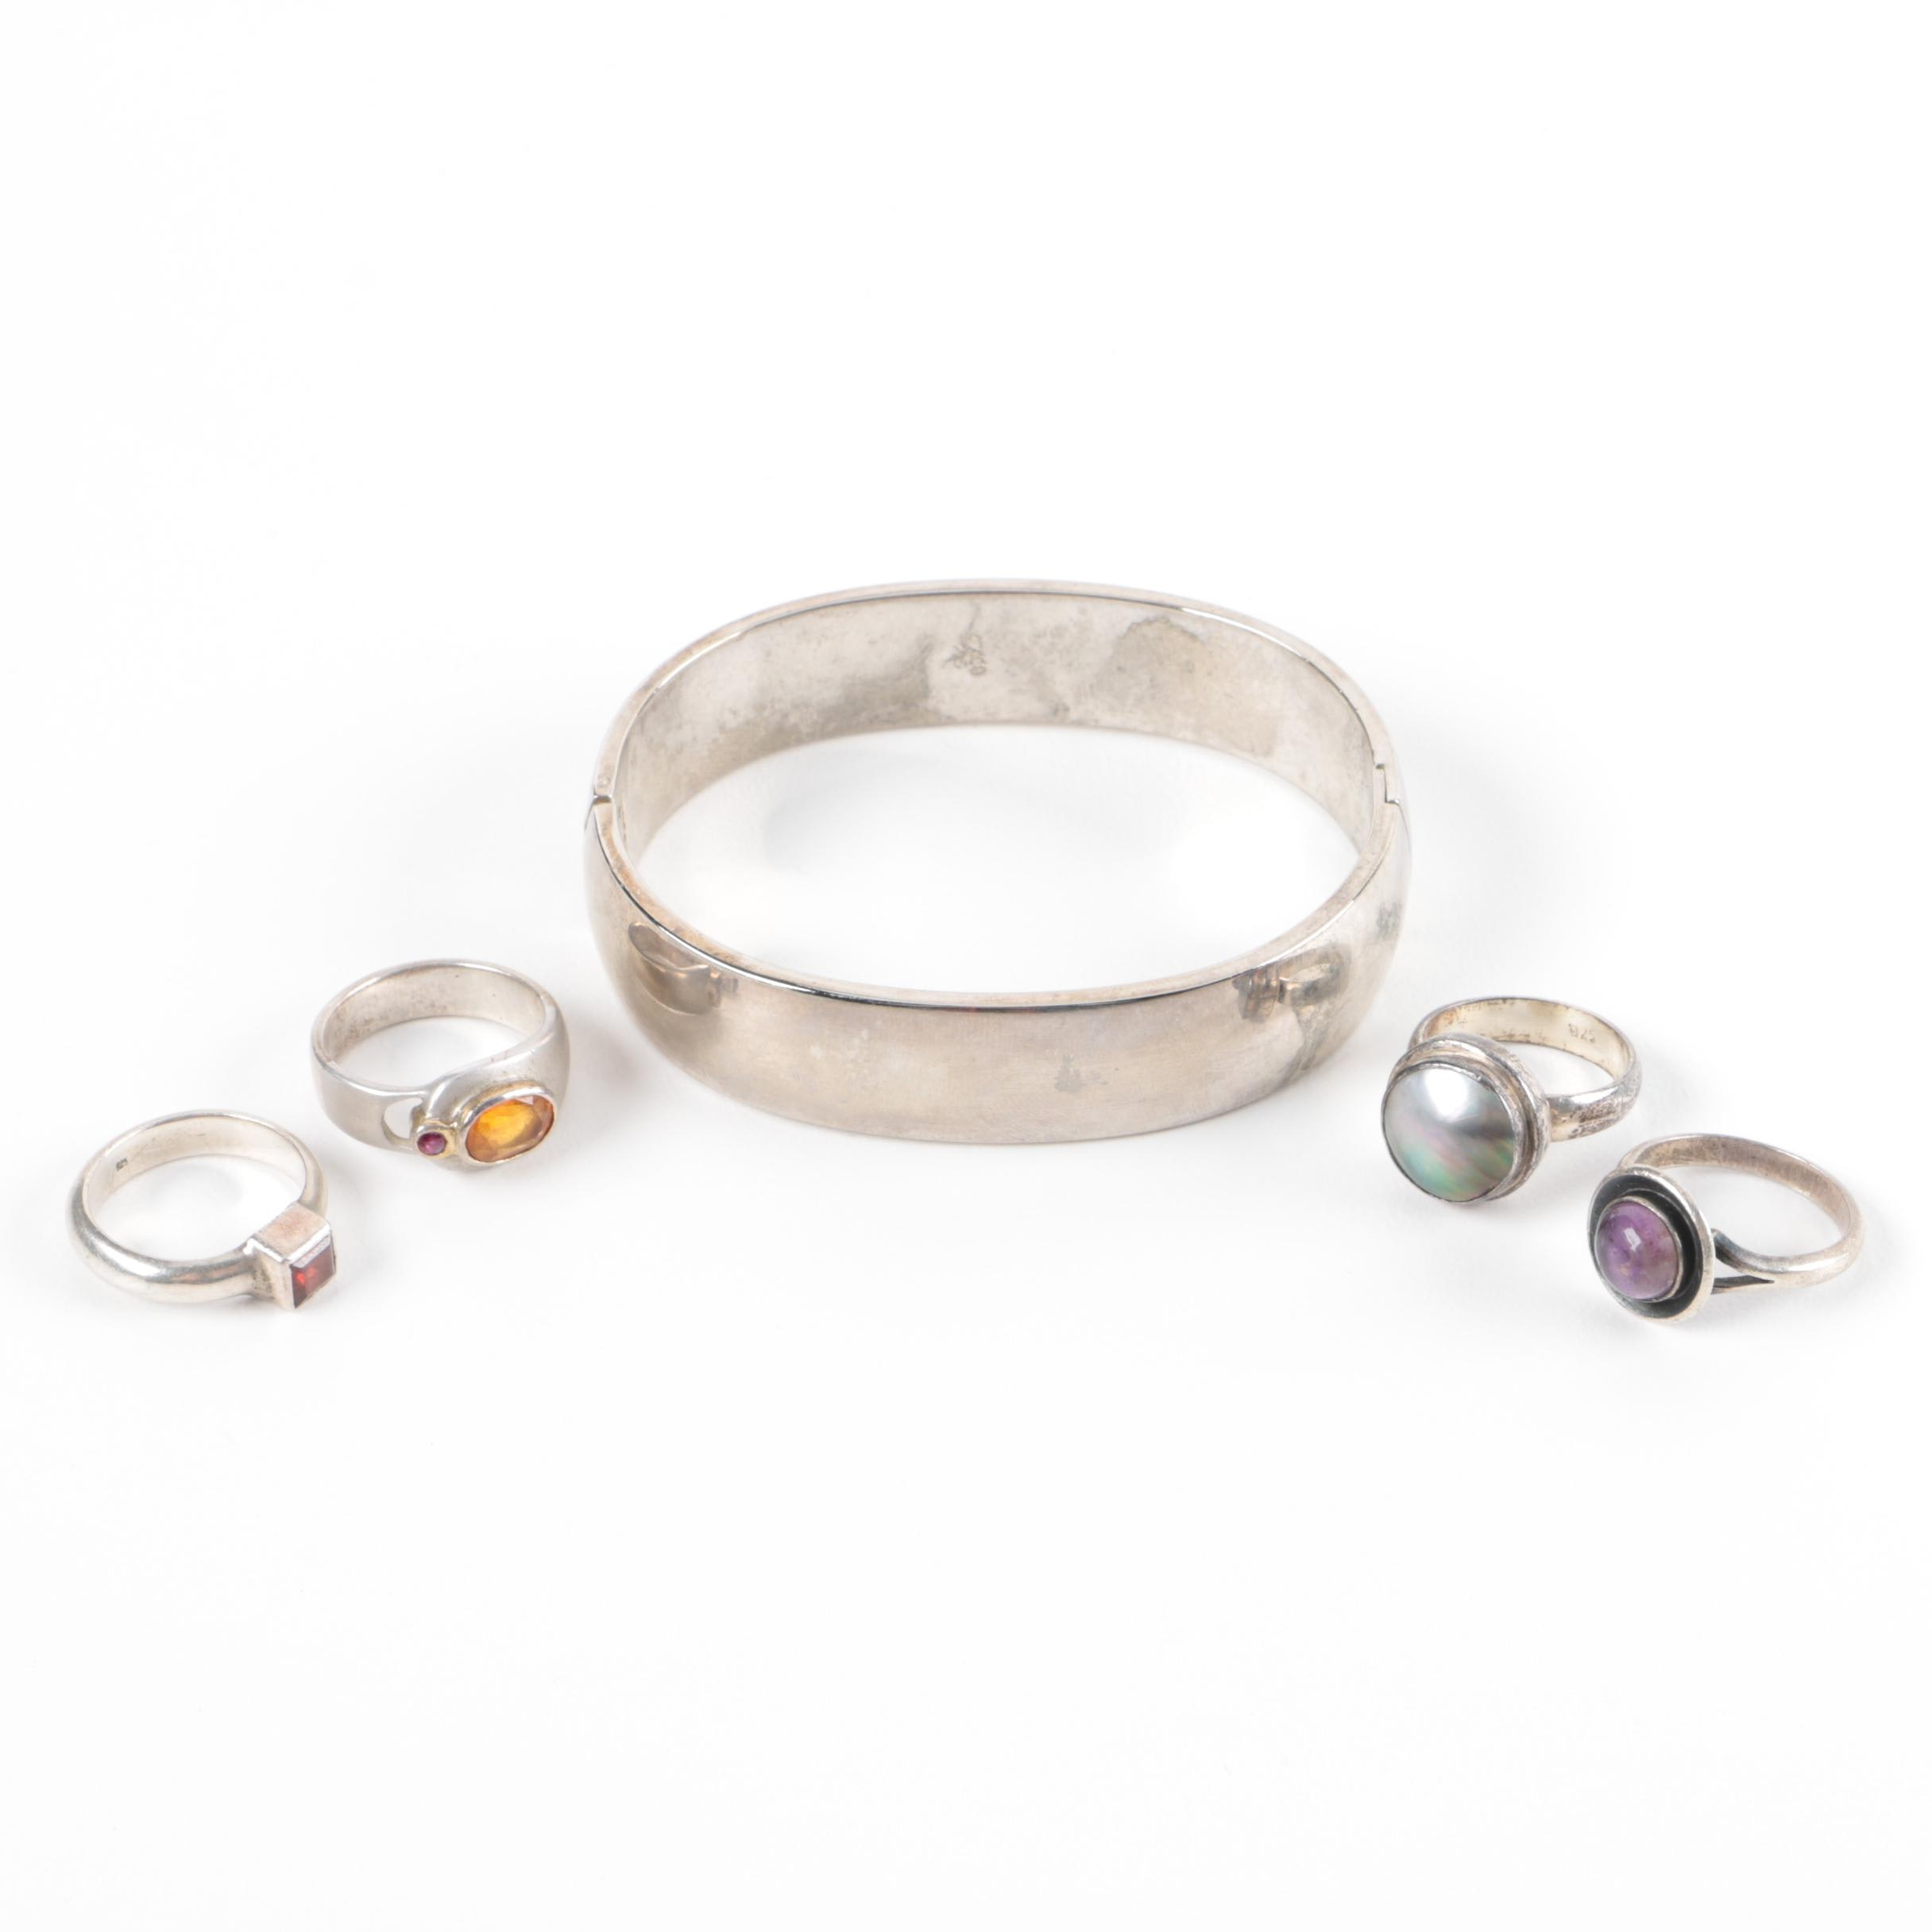 Assortment of Sterling Rings and Bracelet